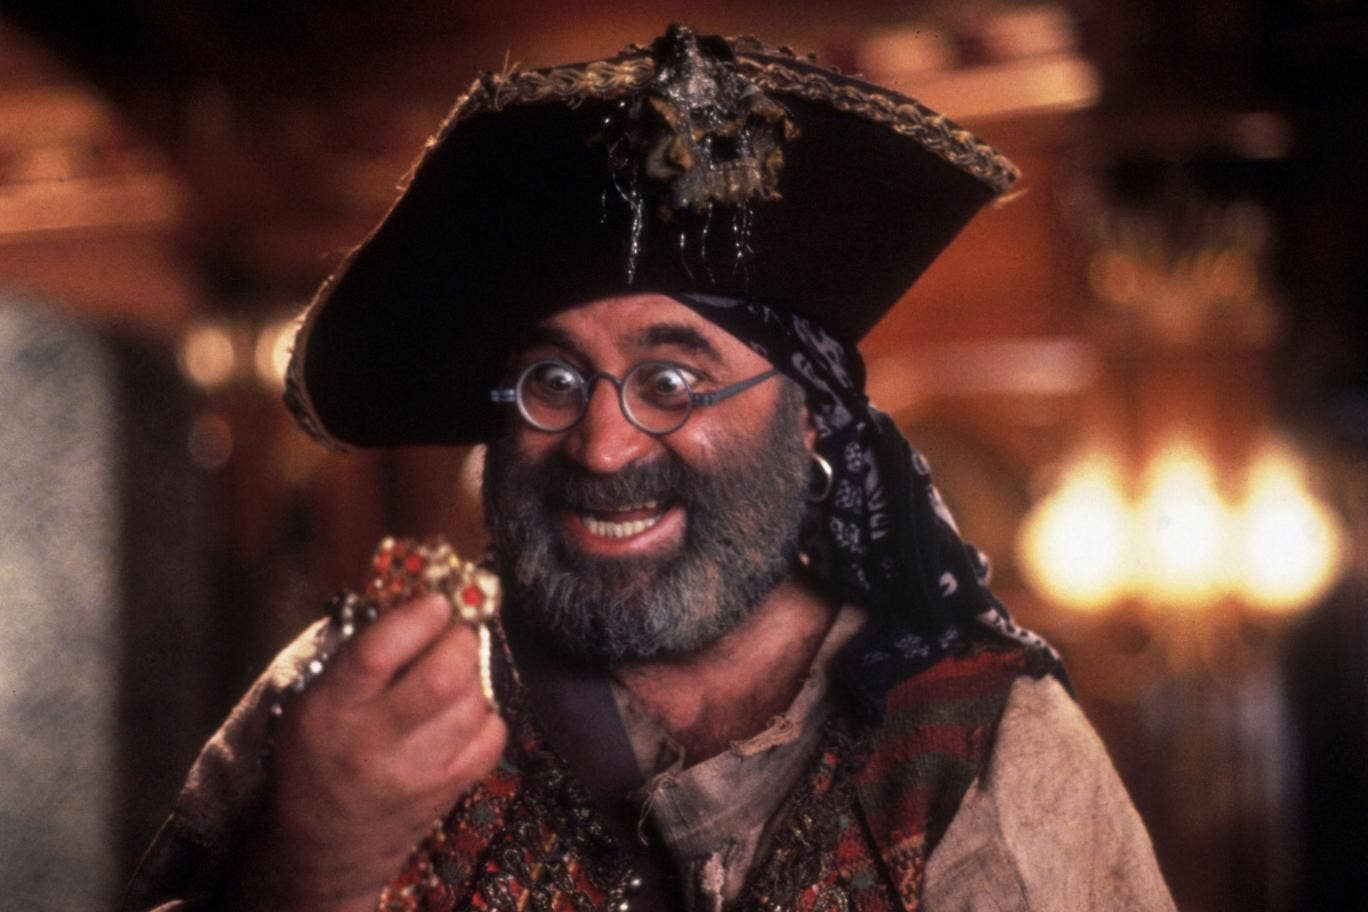 Bob Hoskins is remembered by many for his role as Captain Hook's sidekick Smee in 1991's Hook